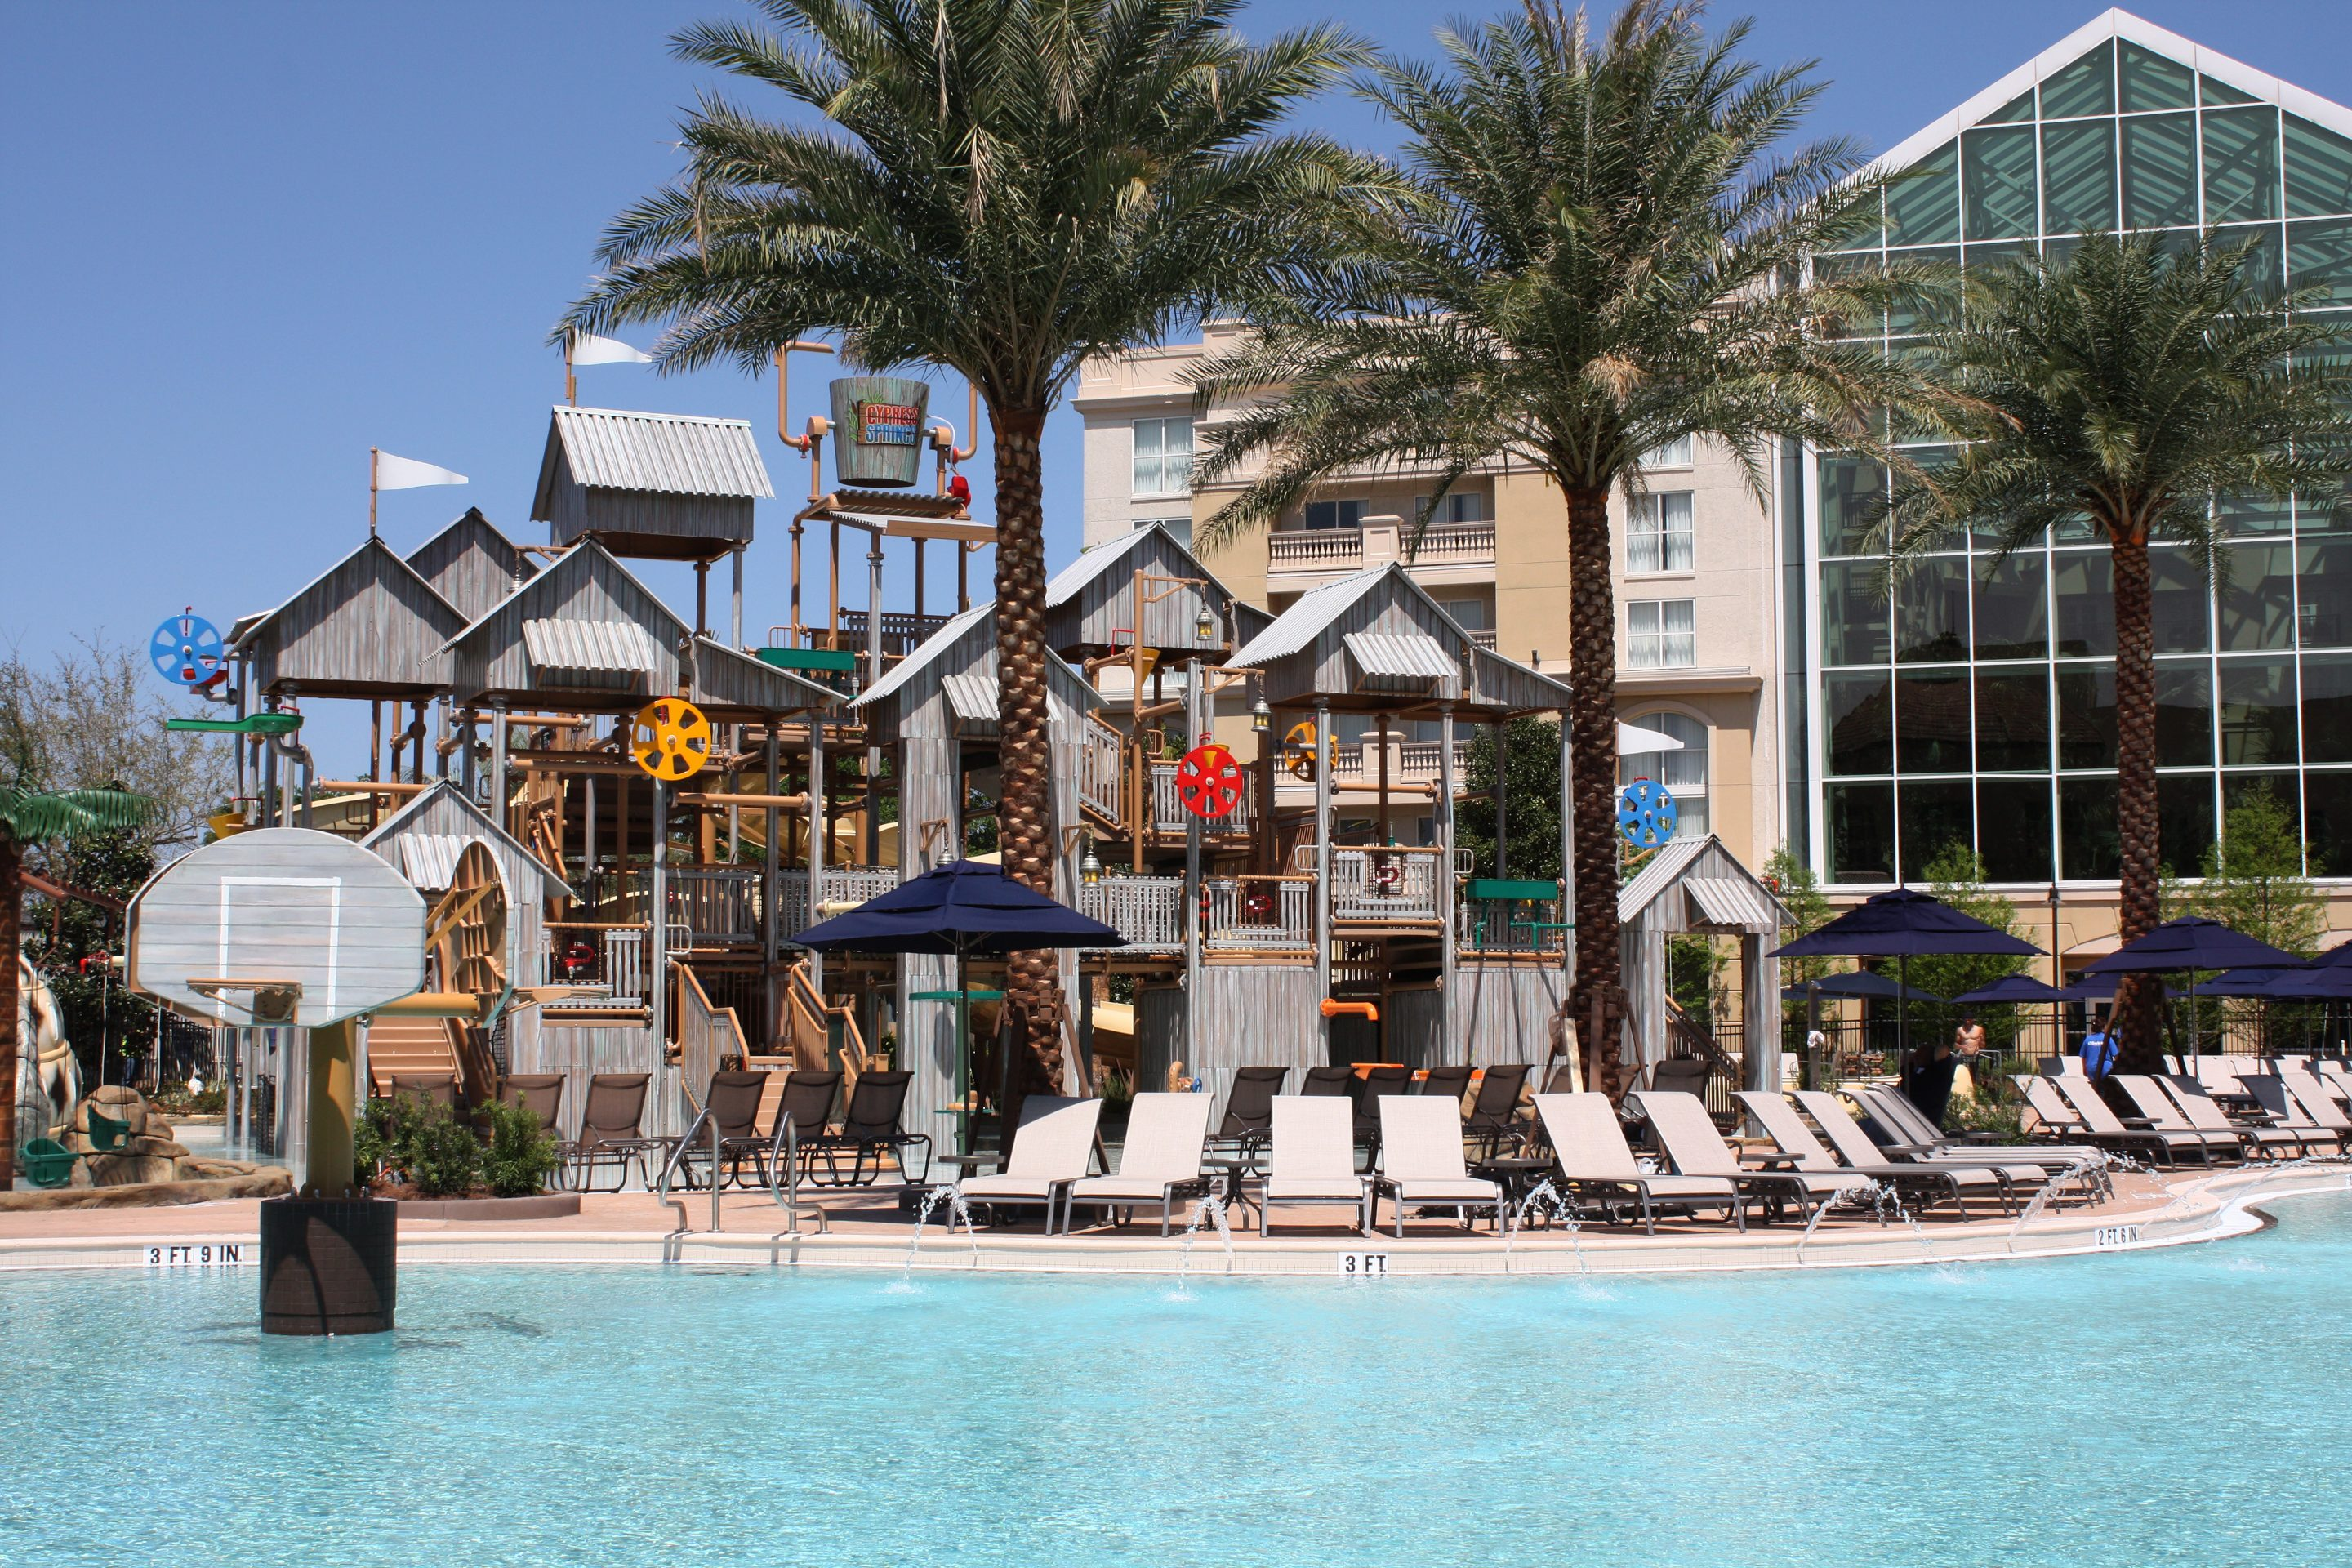 Gaylord Palms Orlando Opens Cypress Springs Water Park and Renovated Rooms